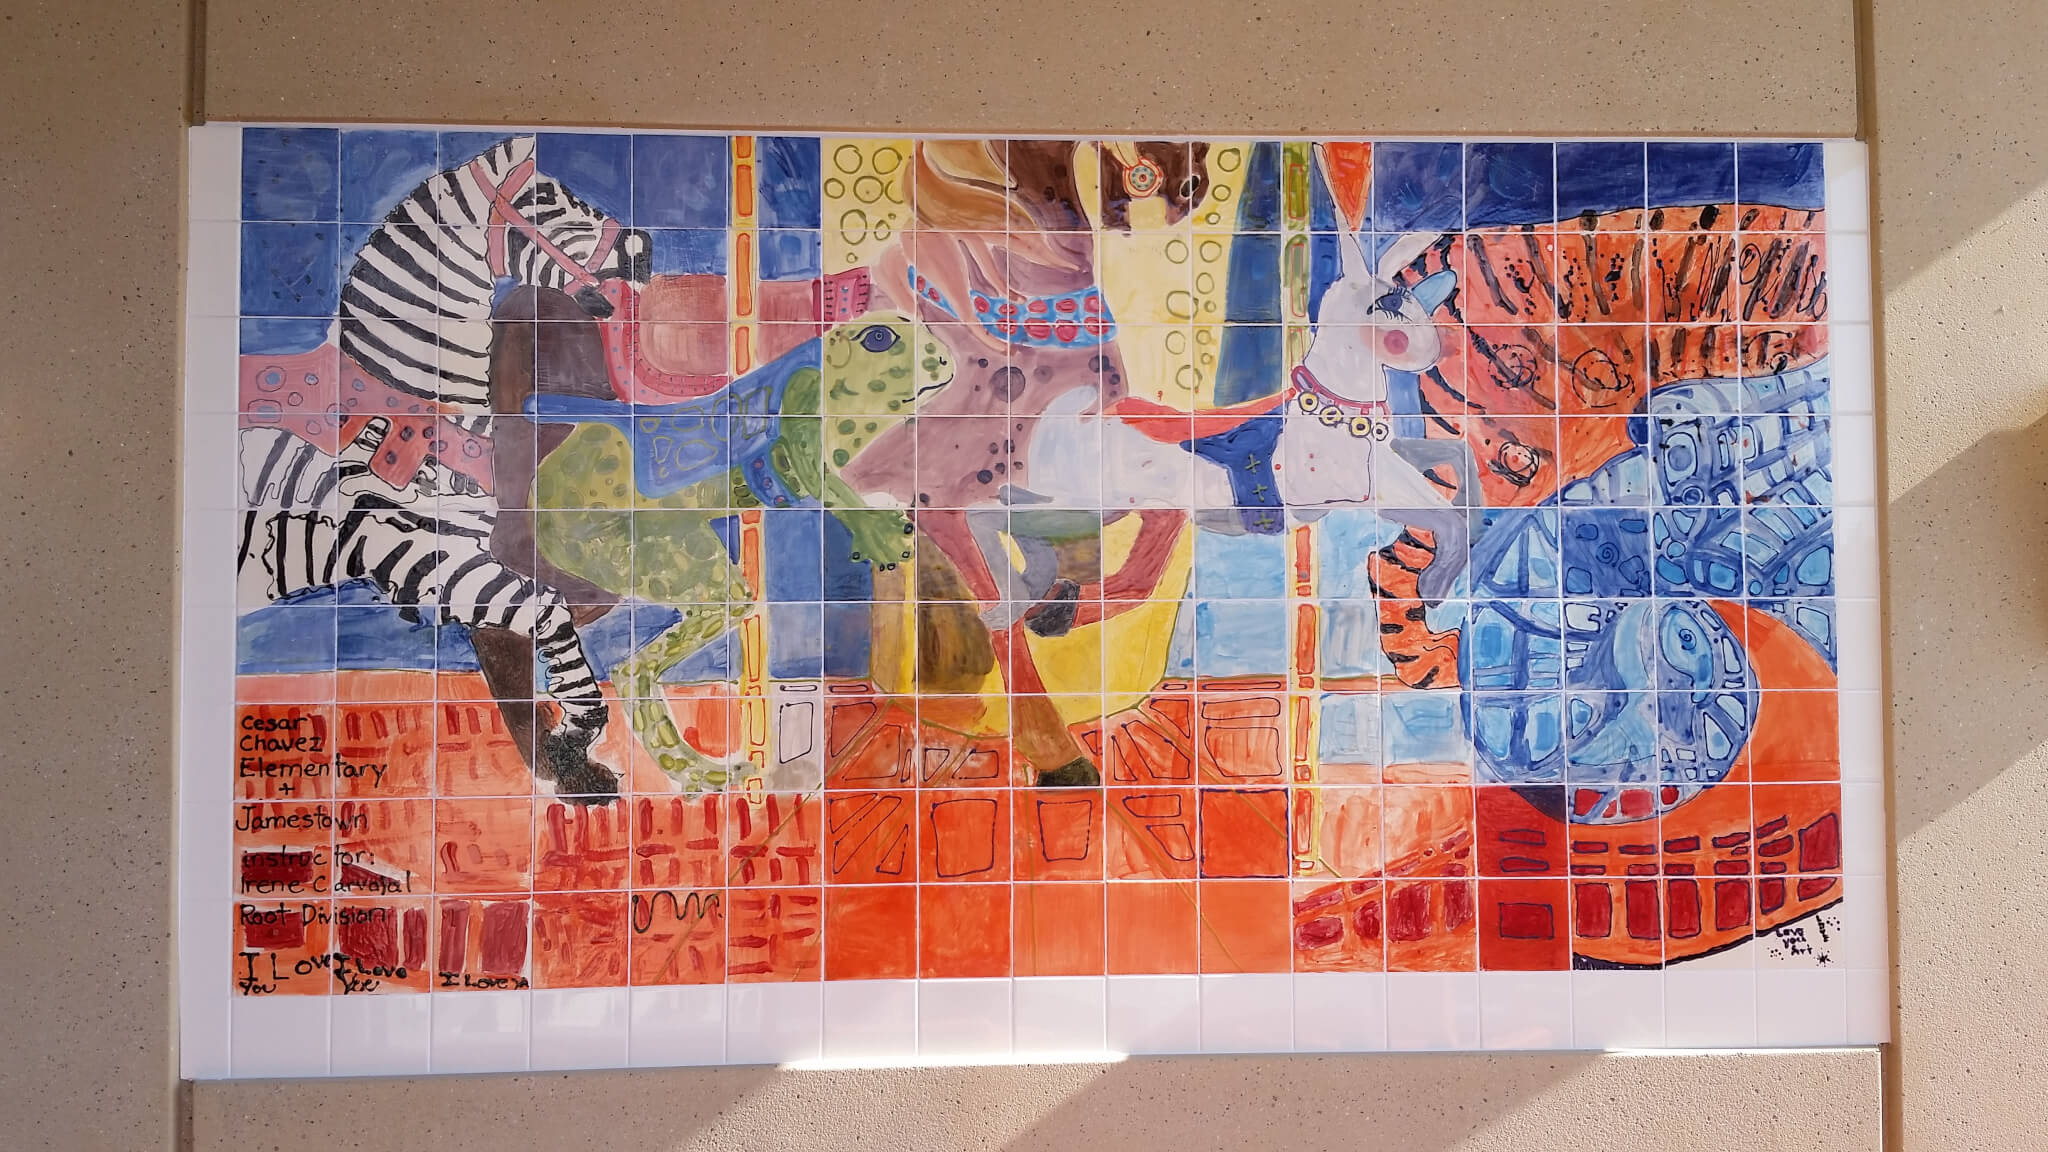 Art part of healing design at ucsf medical center for Cesar chavez mural